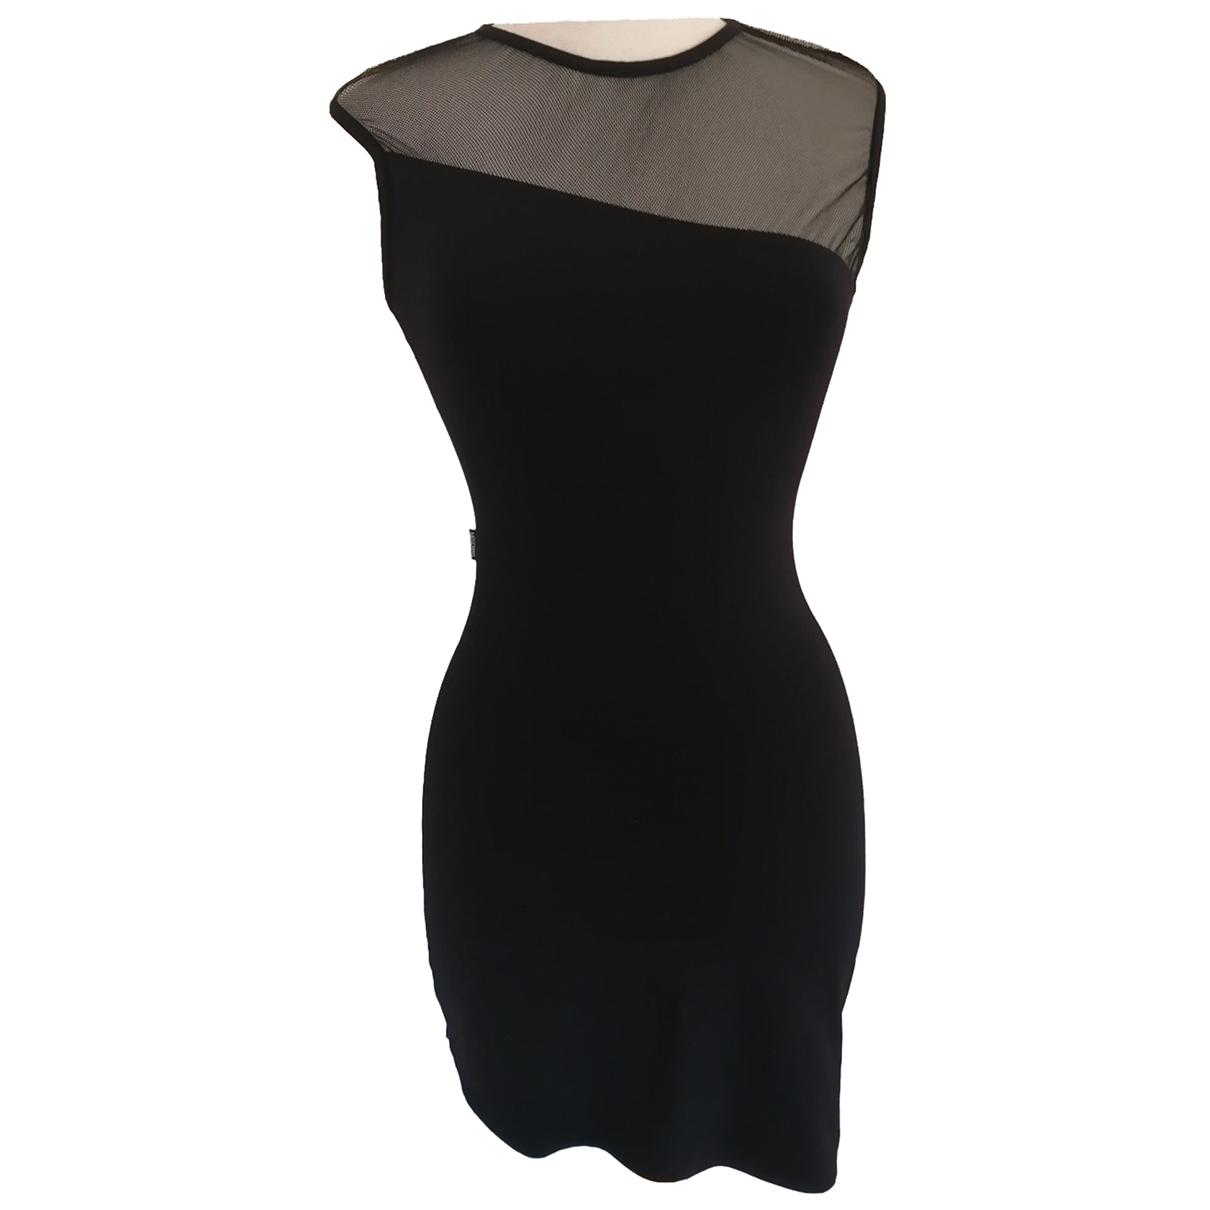 Moschino Cheap And Chic \N Black dress for Women 36 FR